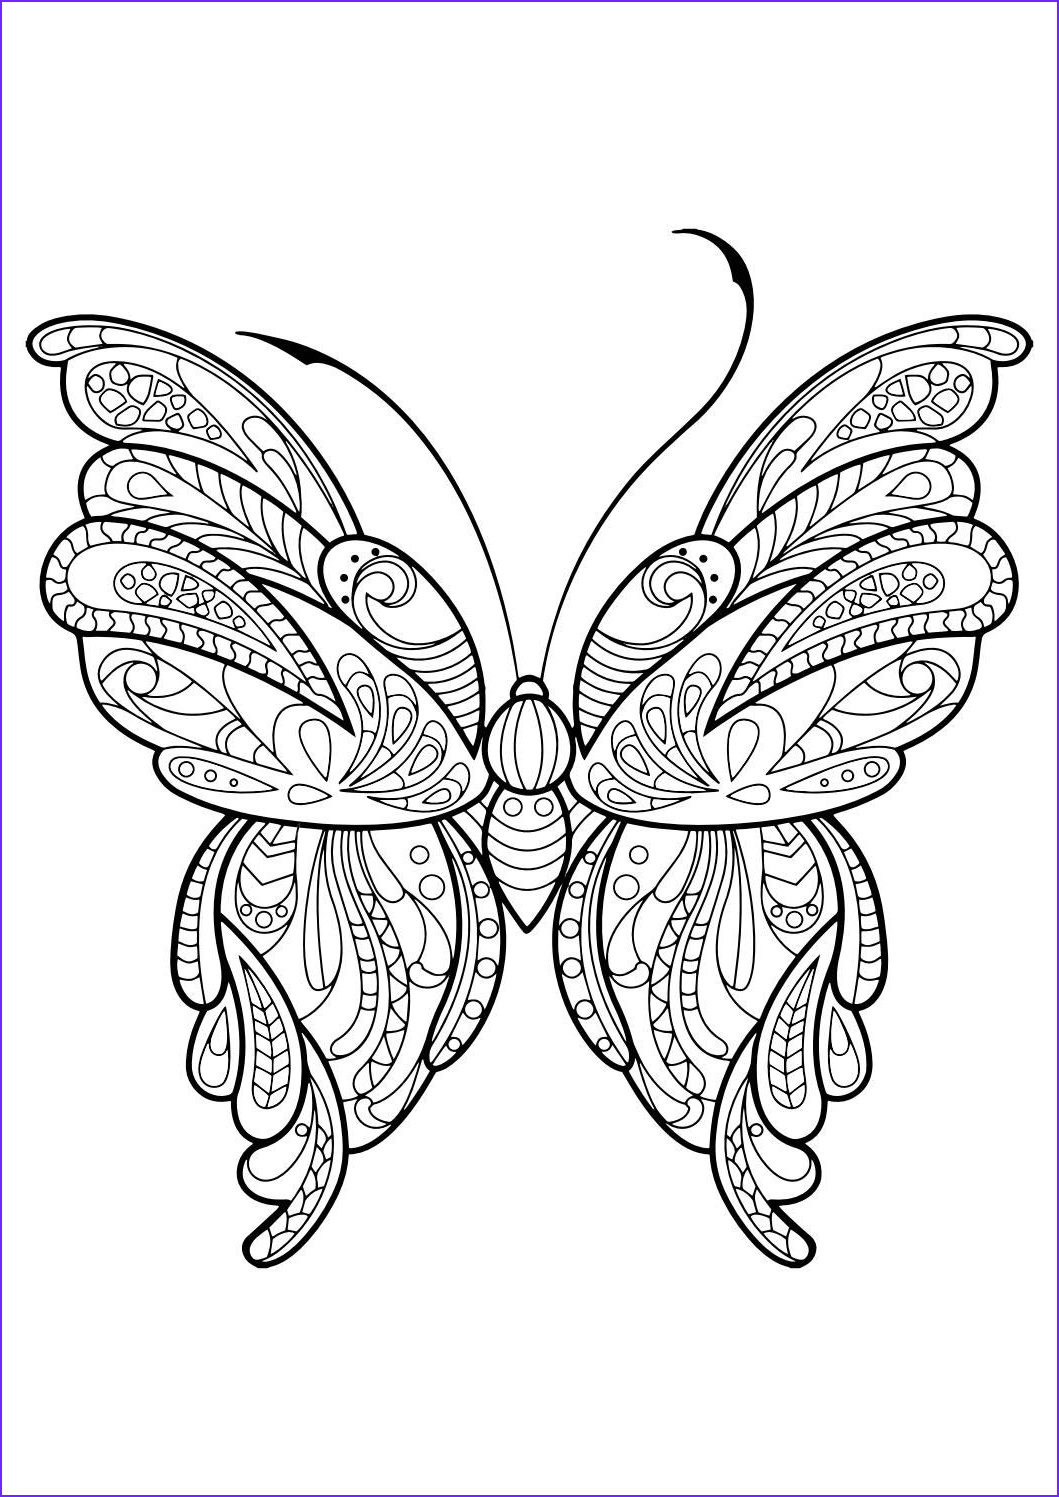 Butterfly Coloring Pages For Adults Awesome Image Adult Butterfly Coloring Book